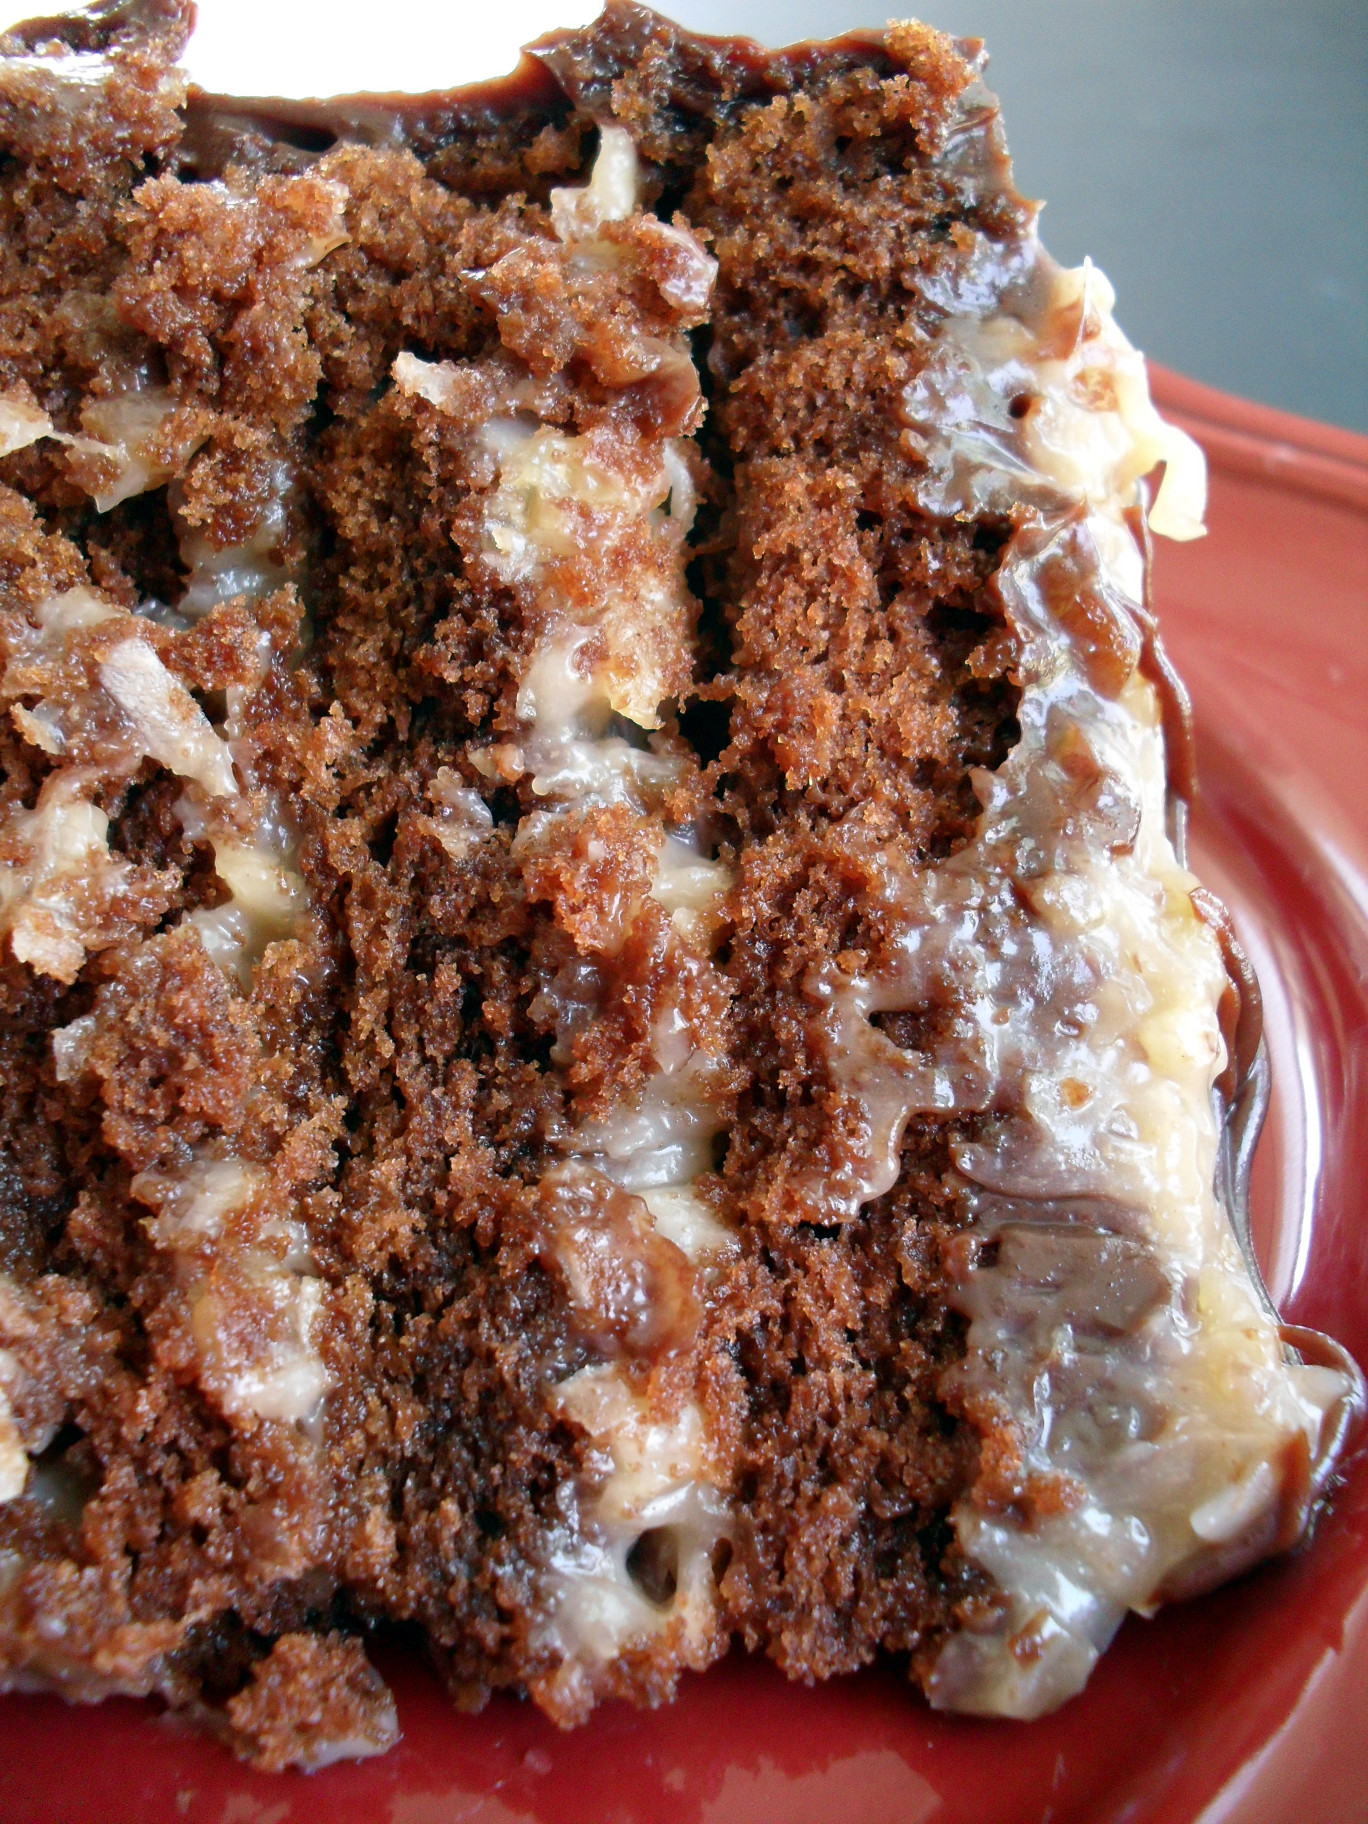 German Chocolate Cake  David Lebovitz's German Chocolate Cake